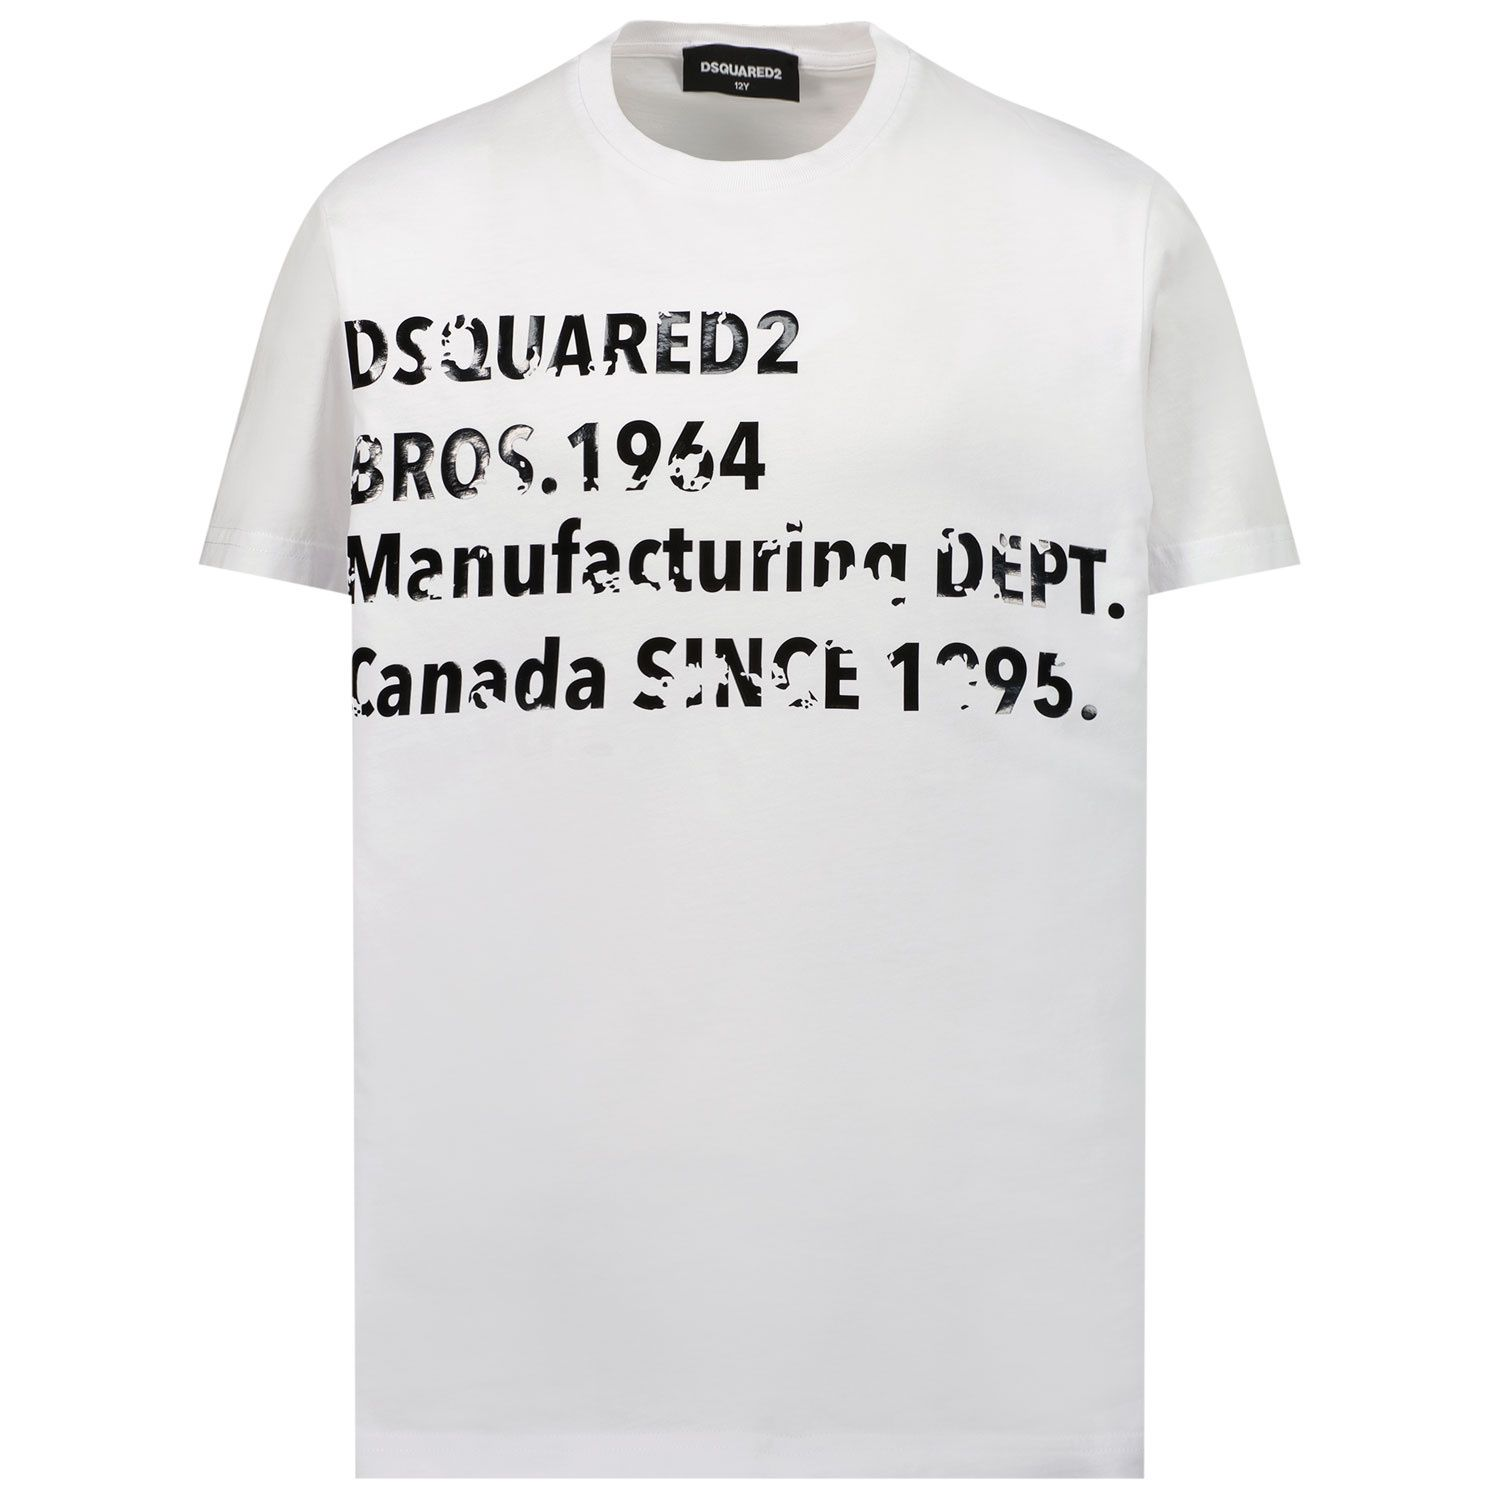 Picture of Dsquared2 DQ0149 kids t-shirt white